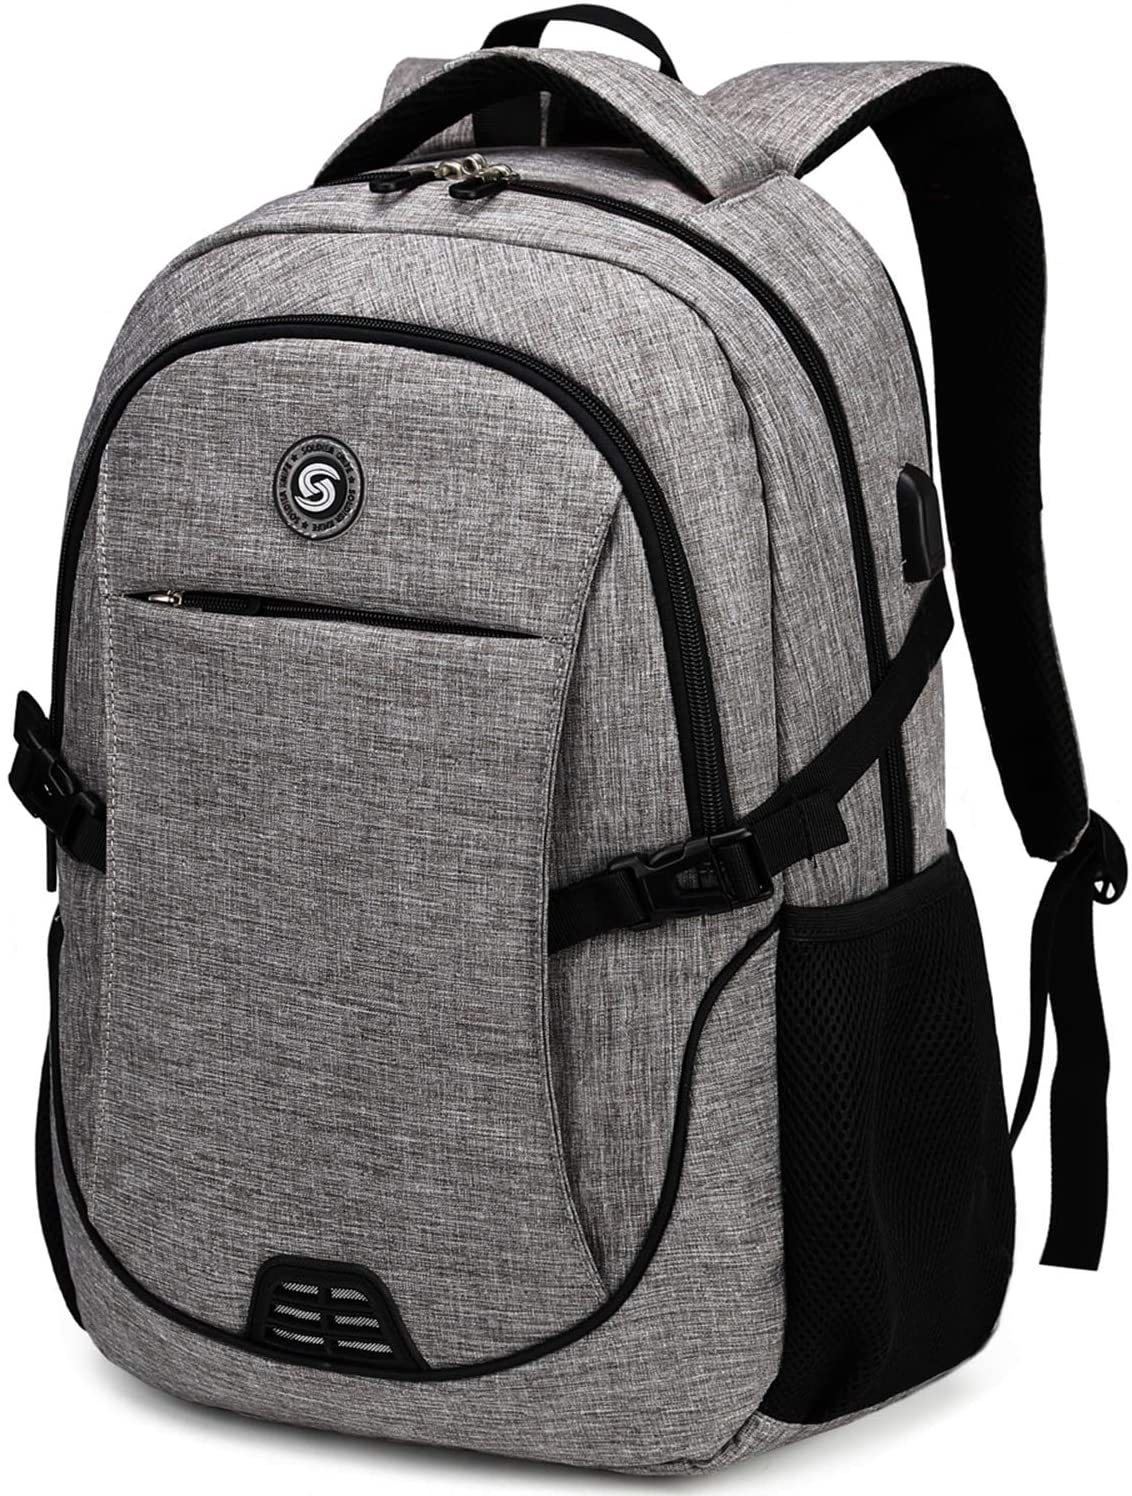 Gray and black anti-theft backpack on white background